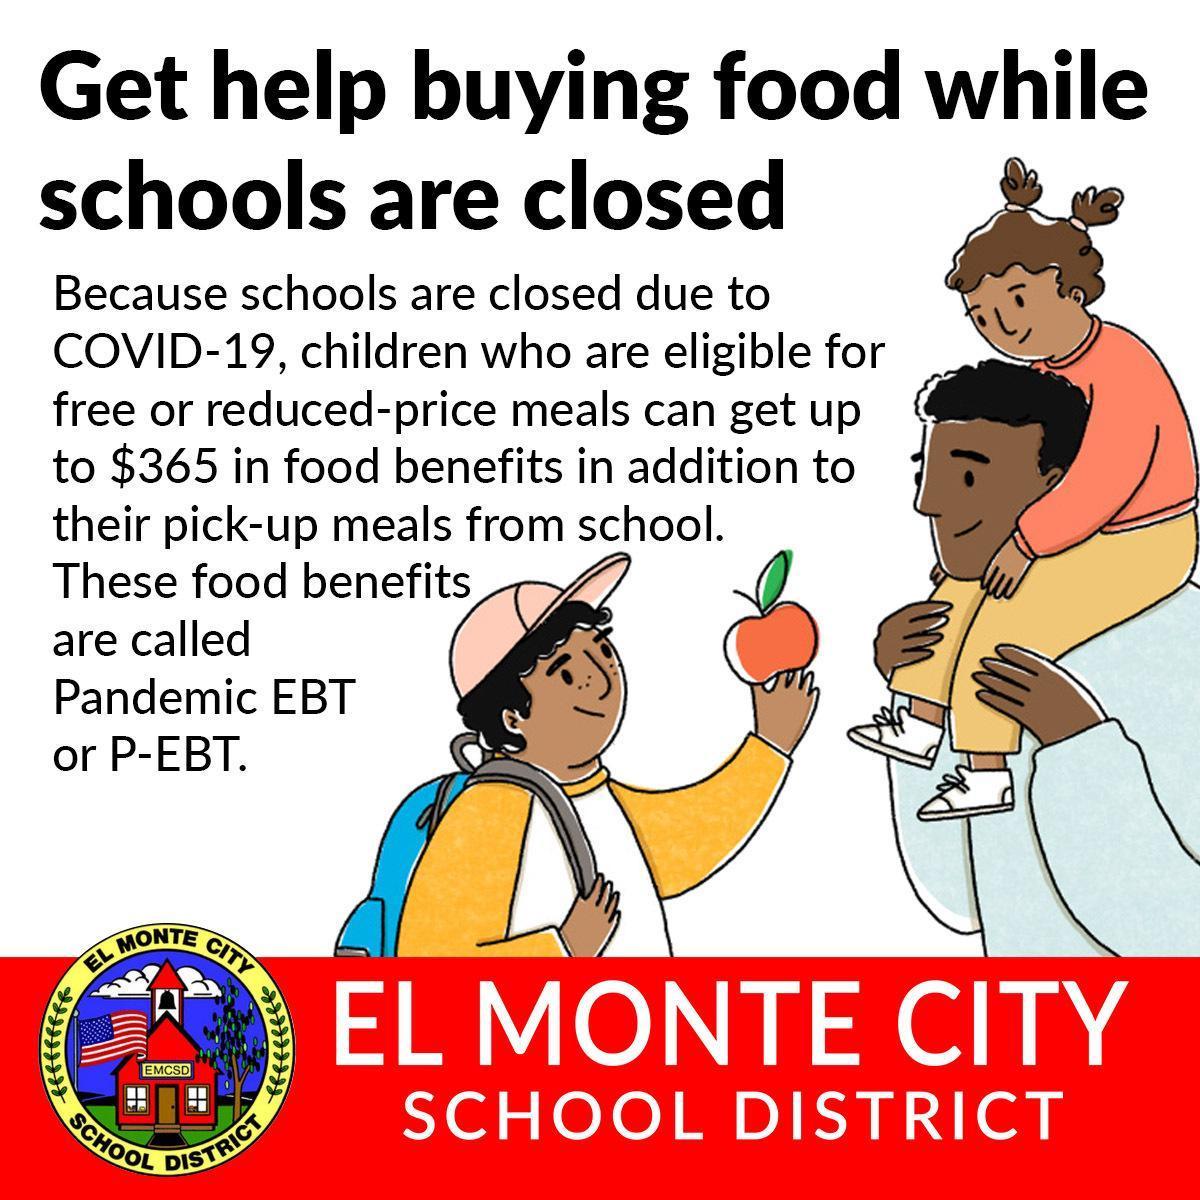 Benefits are called Pandemic EBT or P-EBT. See the fliers below for more information.